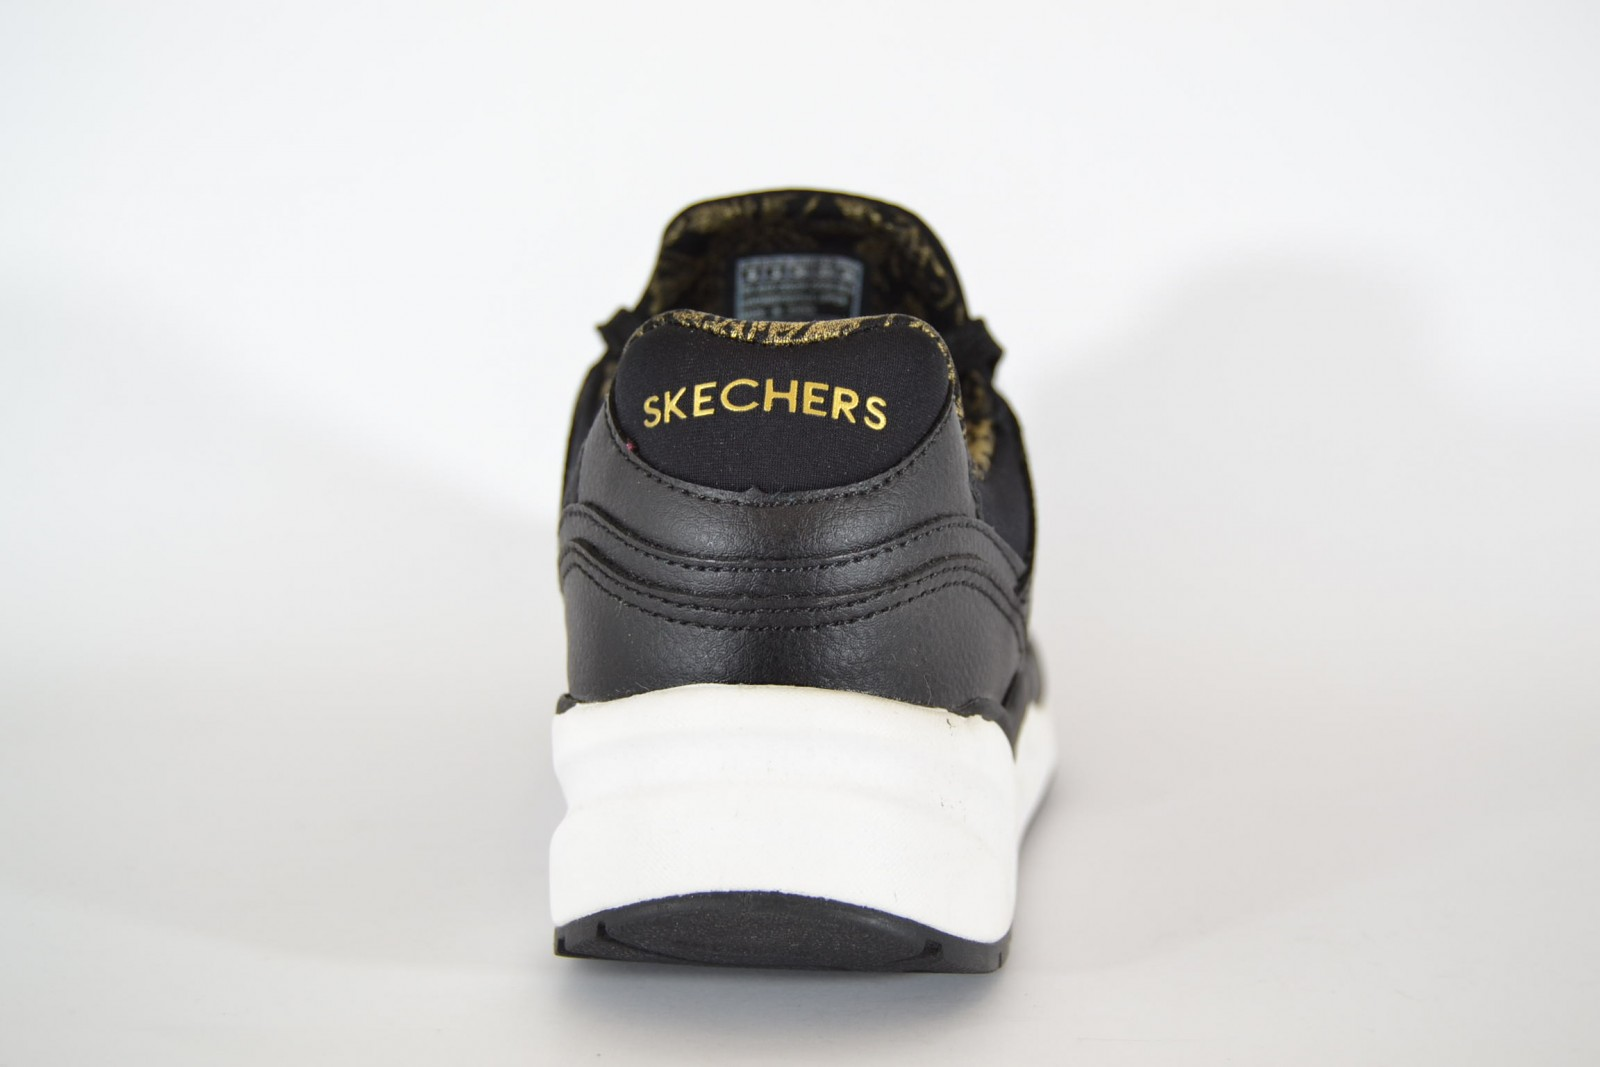 whisky federación Diez  SKECHERS LIFESTYLE SHOES - Roba SHOES SRL